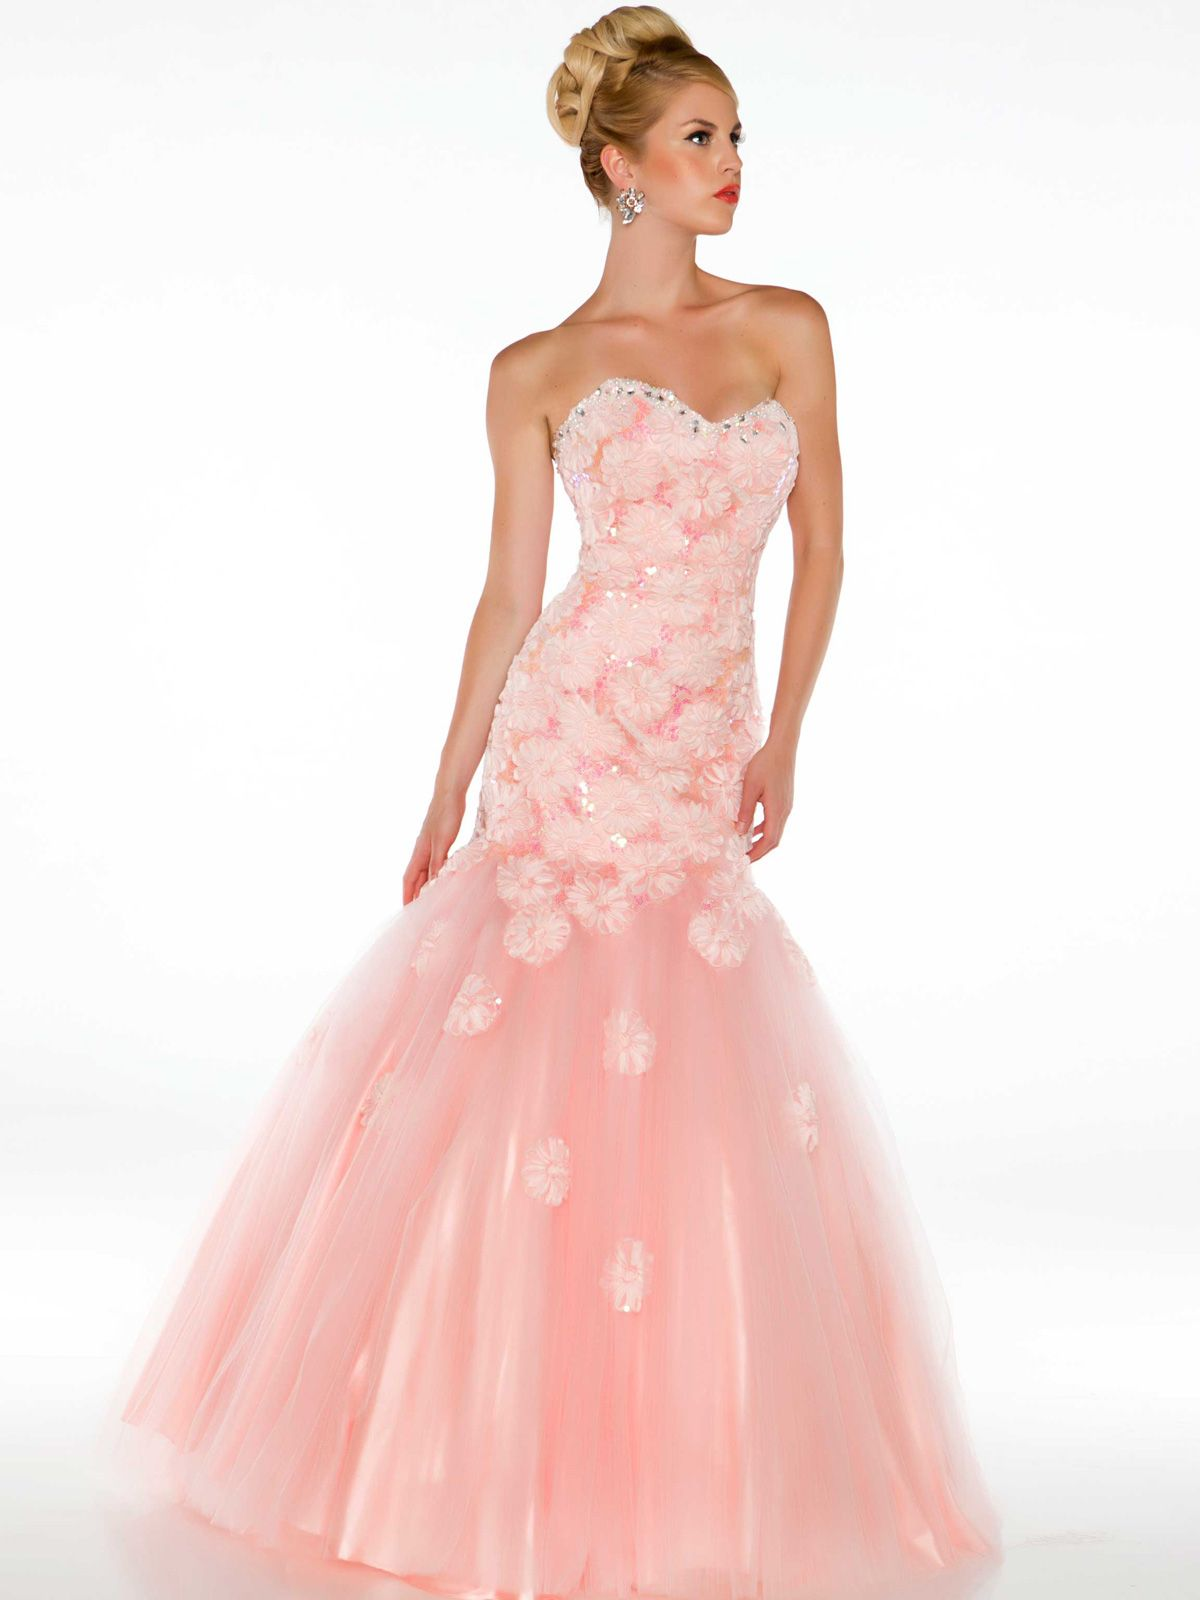 Blush pink dresses are all over celebrity red carpet events and the